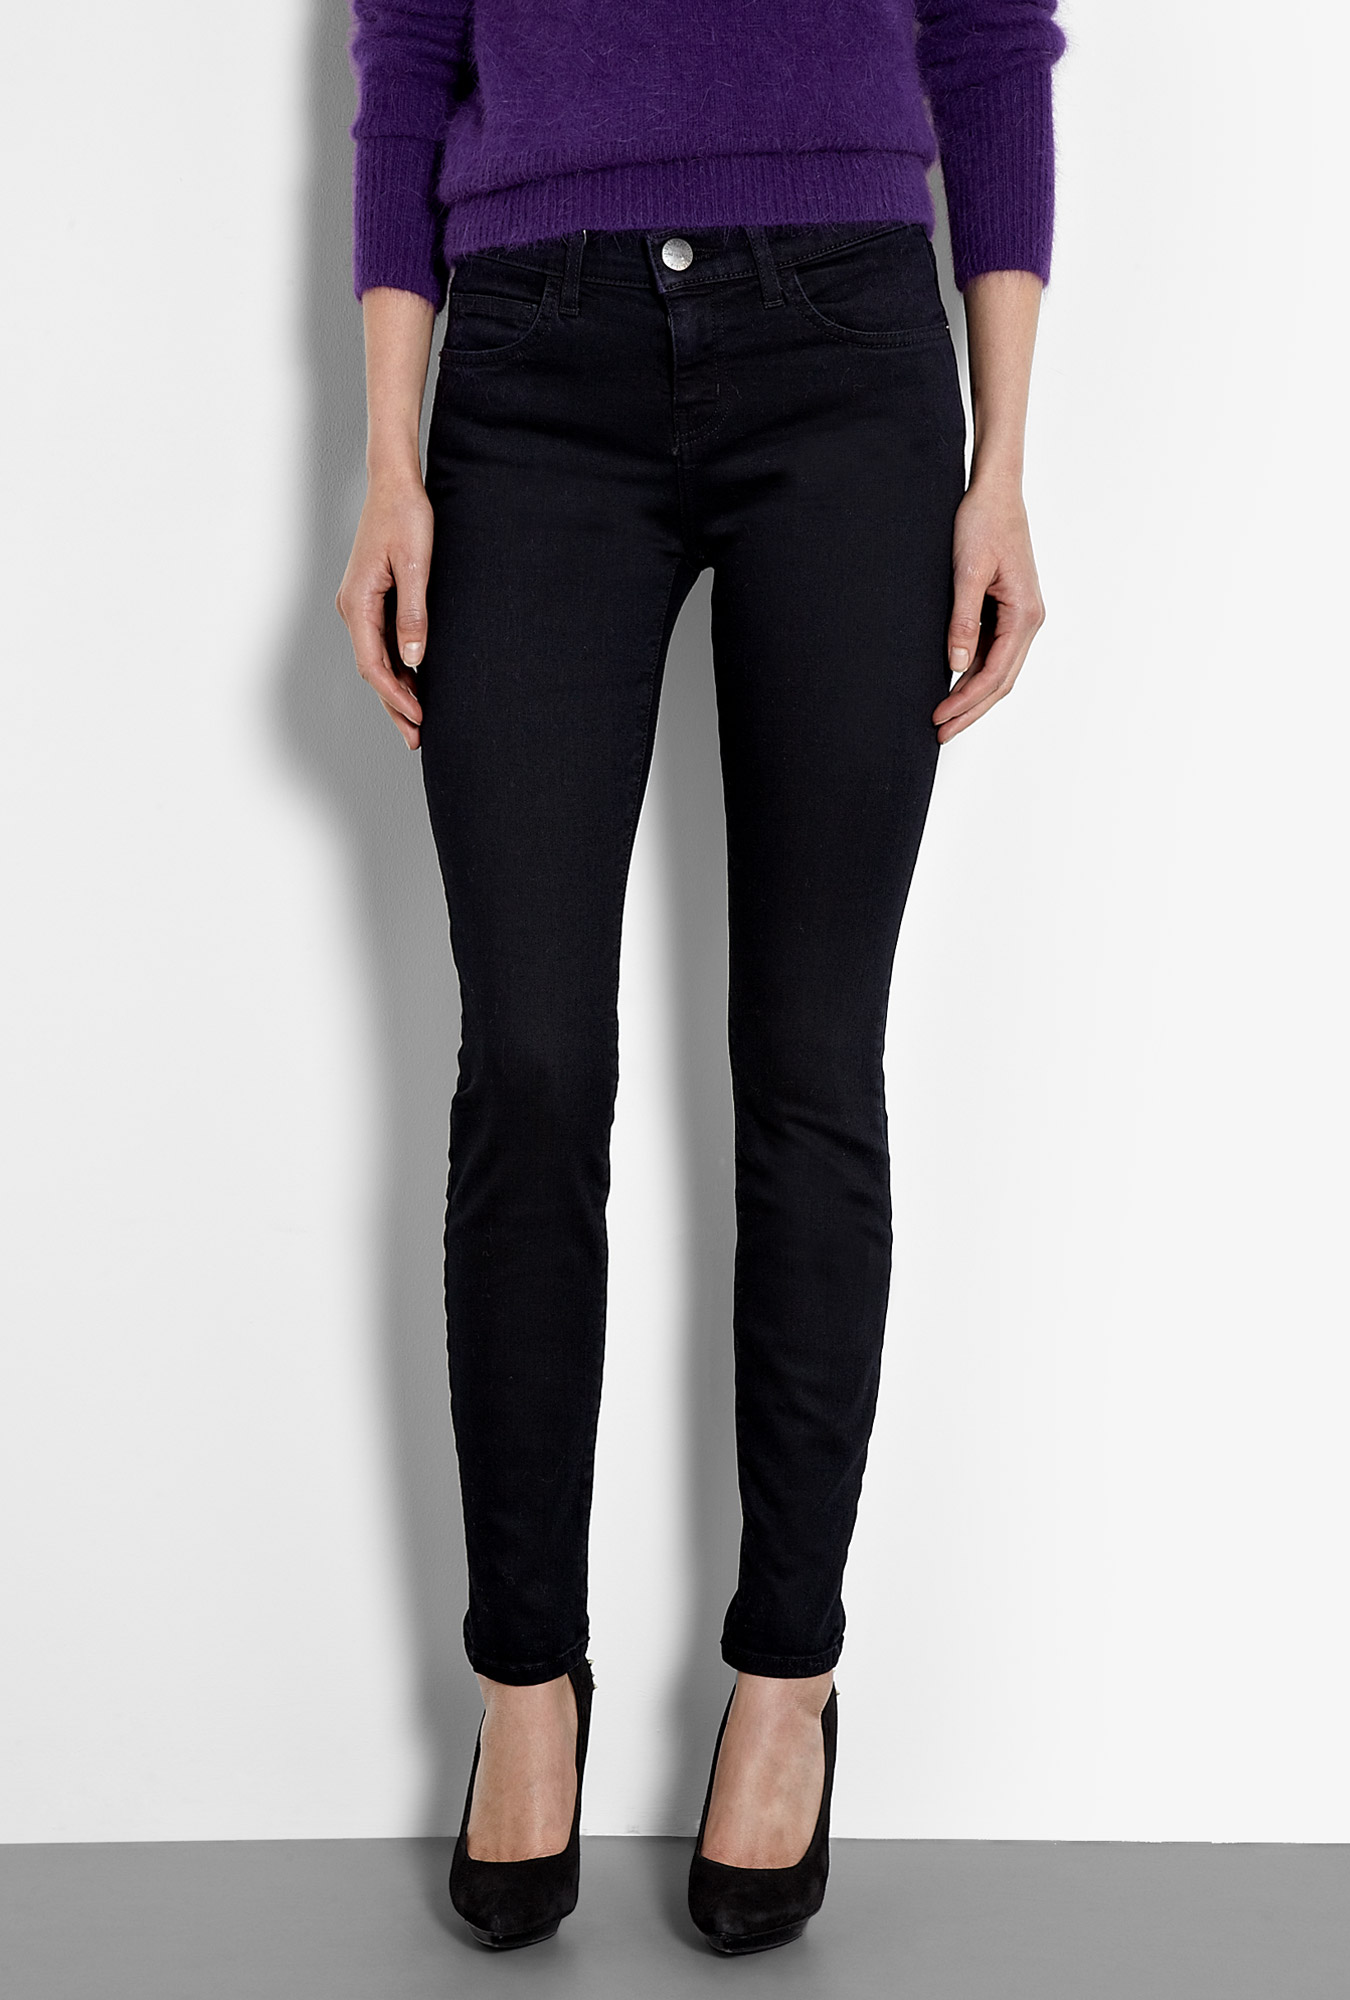 Tally Mid-Rise Crop Skinny Jeans in Down N Out. $ Like. Hudson. Barbara High-Waist Crop Step Hem Skinny Jeans in Lost. $ Like. Hudson. Nico Mid-Rise Crop Skinny Jeans with Grommet Detail in Washed Army Green. $ New. Like. Hudson. Nico Mid-Rise Crop Skinny Jeans with Grommet Detail in Black Wax.